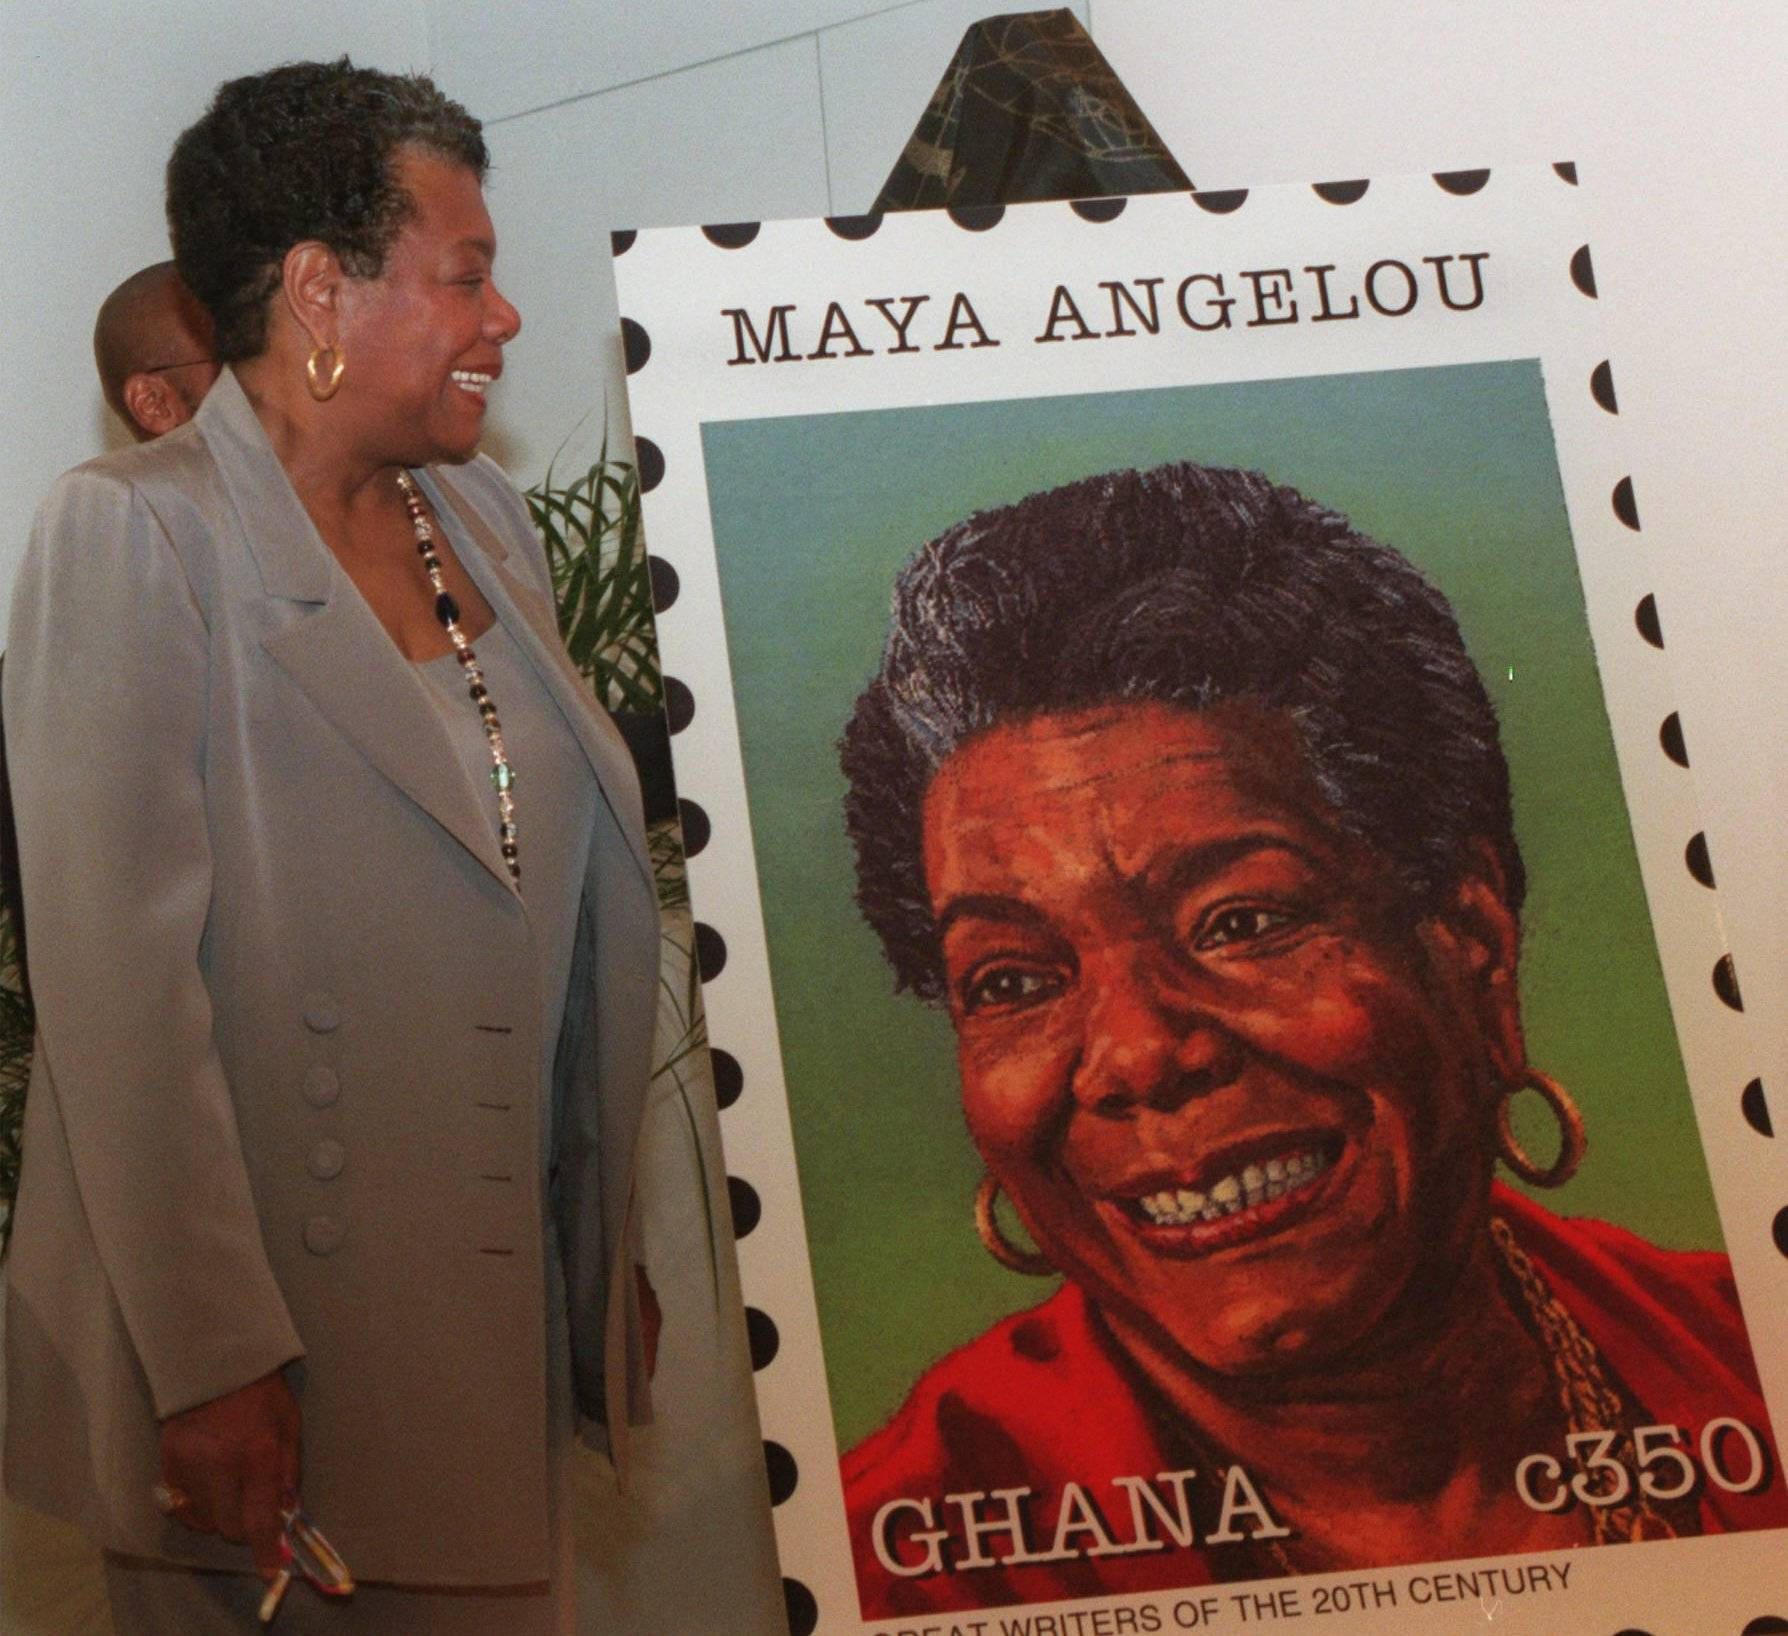 Author Maya Angelou admires a blowup a of a Ghana postage stamp in her honor during a ceremony in Washington Thursday Nov. 13,1997. Twelve Black authors were honored on stamps from Ghana and Uganda to promote World Literacy. The stamps were designed by Gary Aagaard of Seattle.